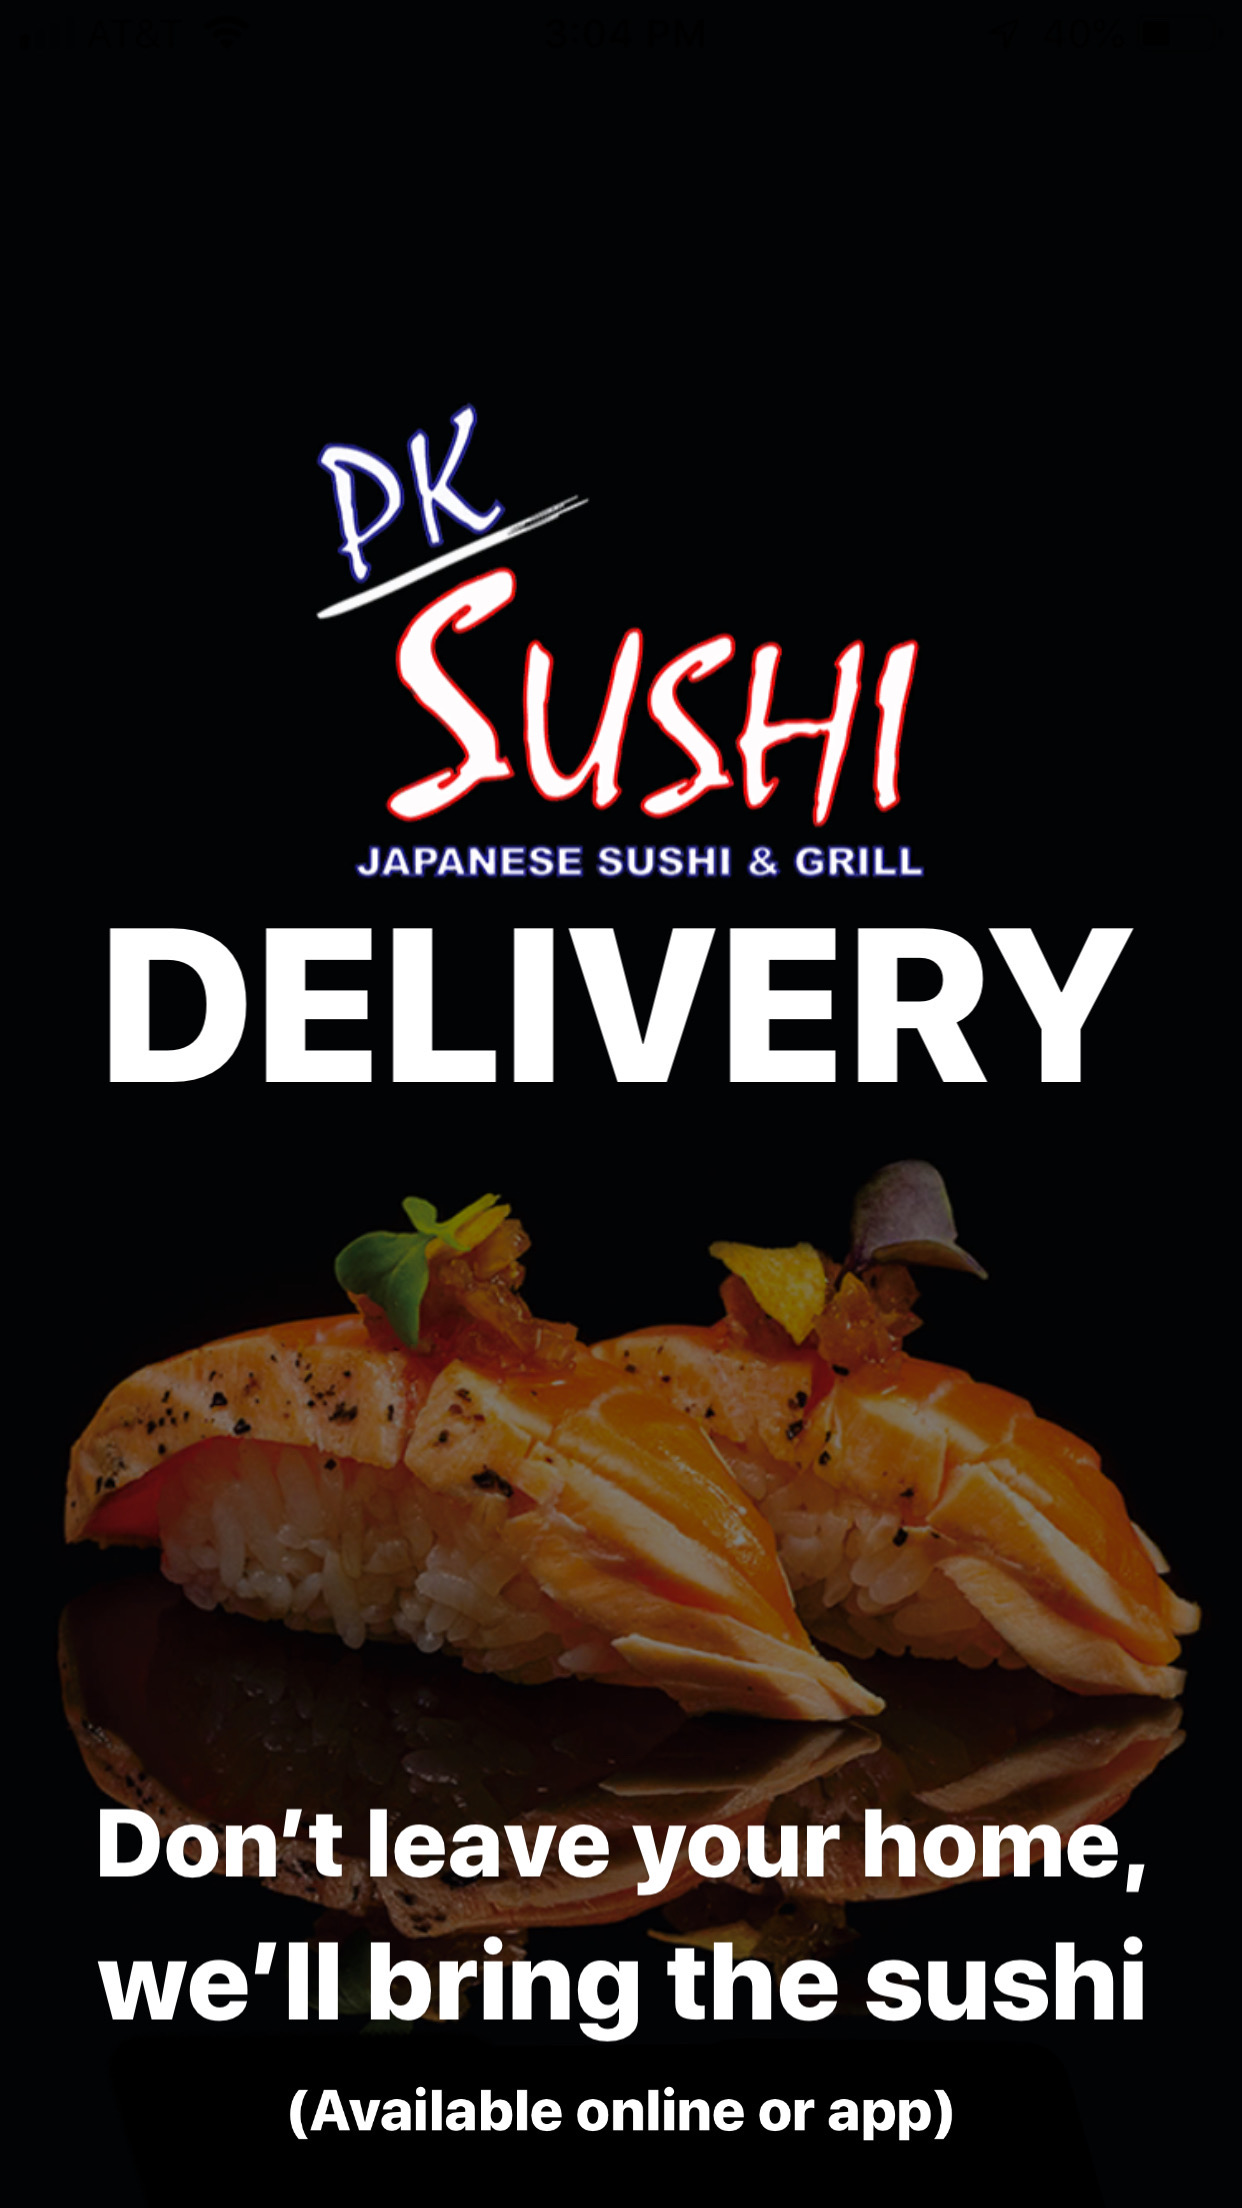 PK Sushi Delivery